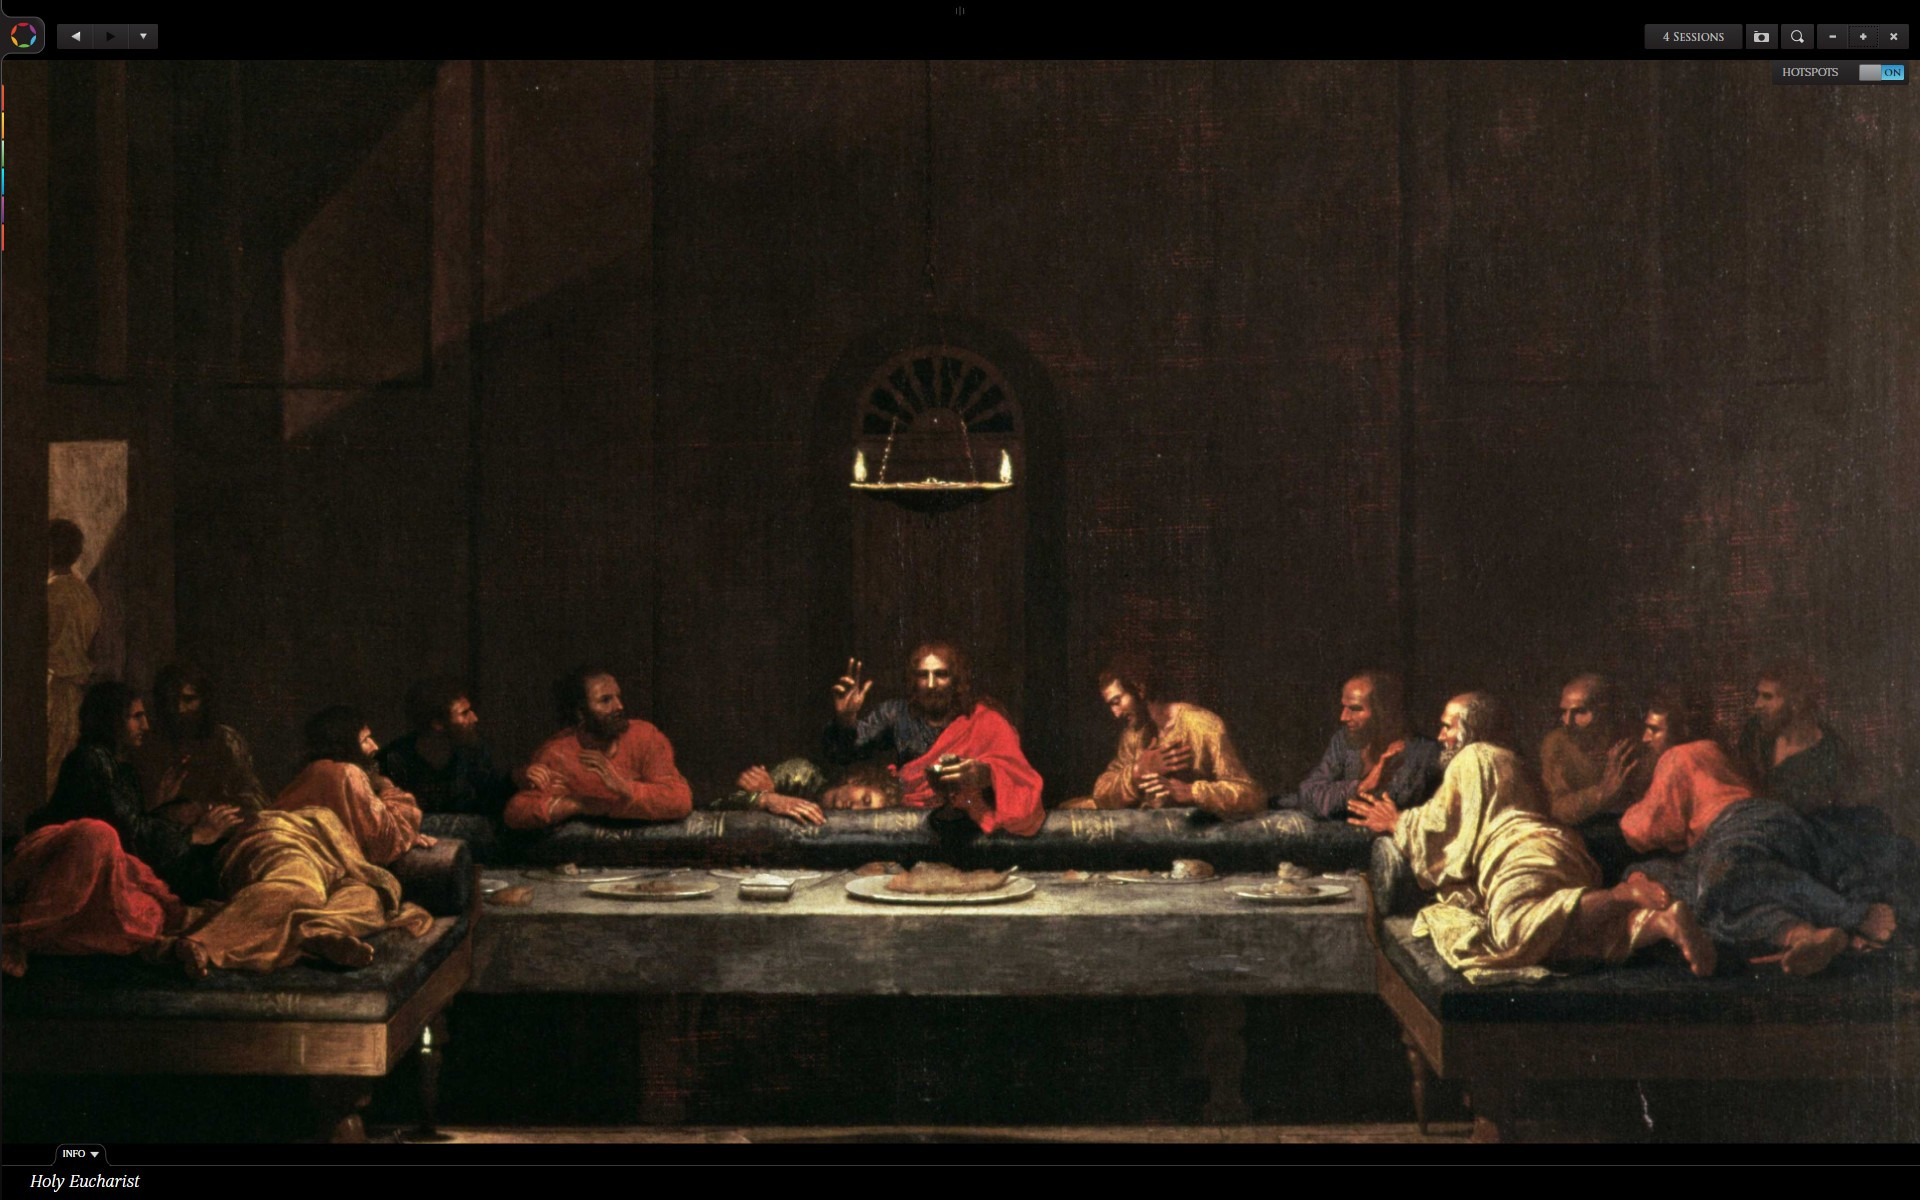 The Last Supper Passover (Feast of Unleavened Bread)